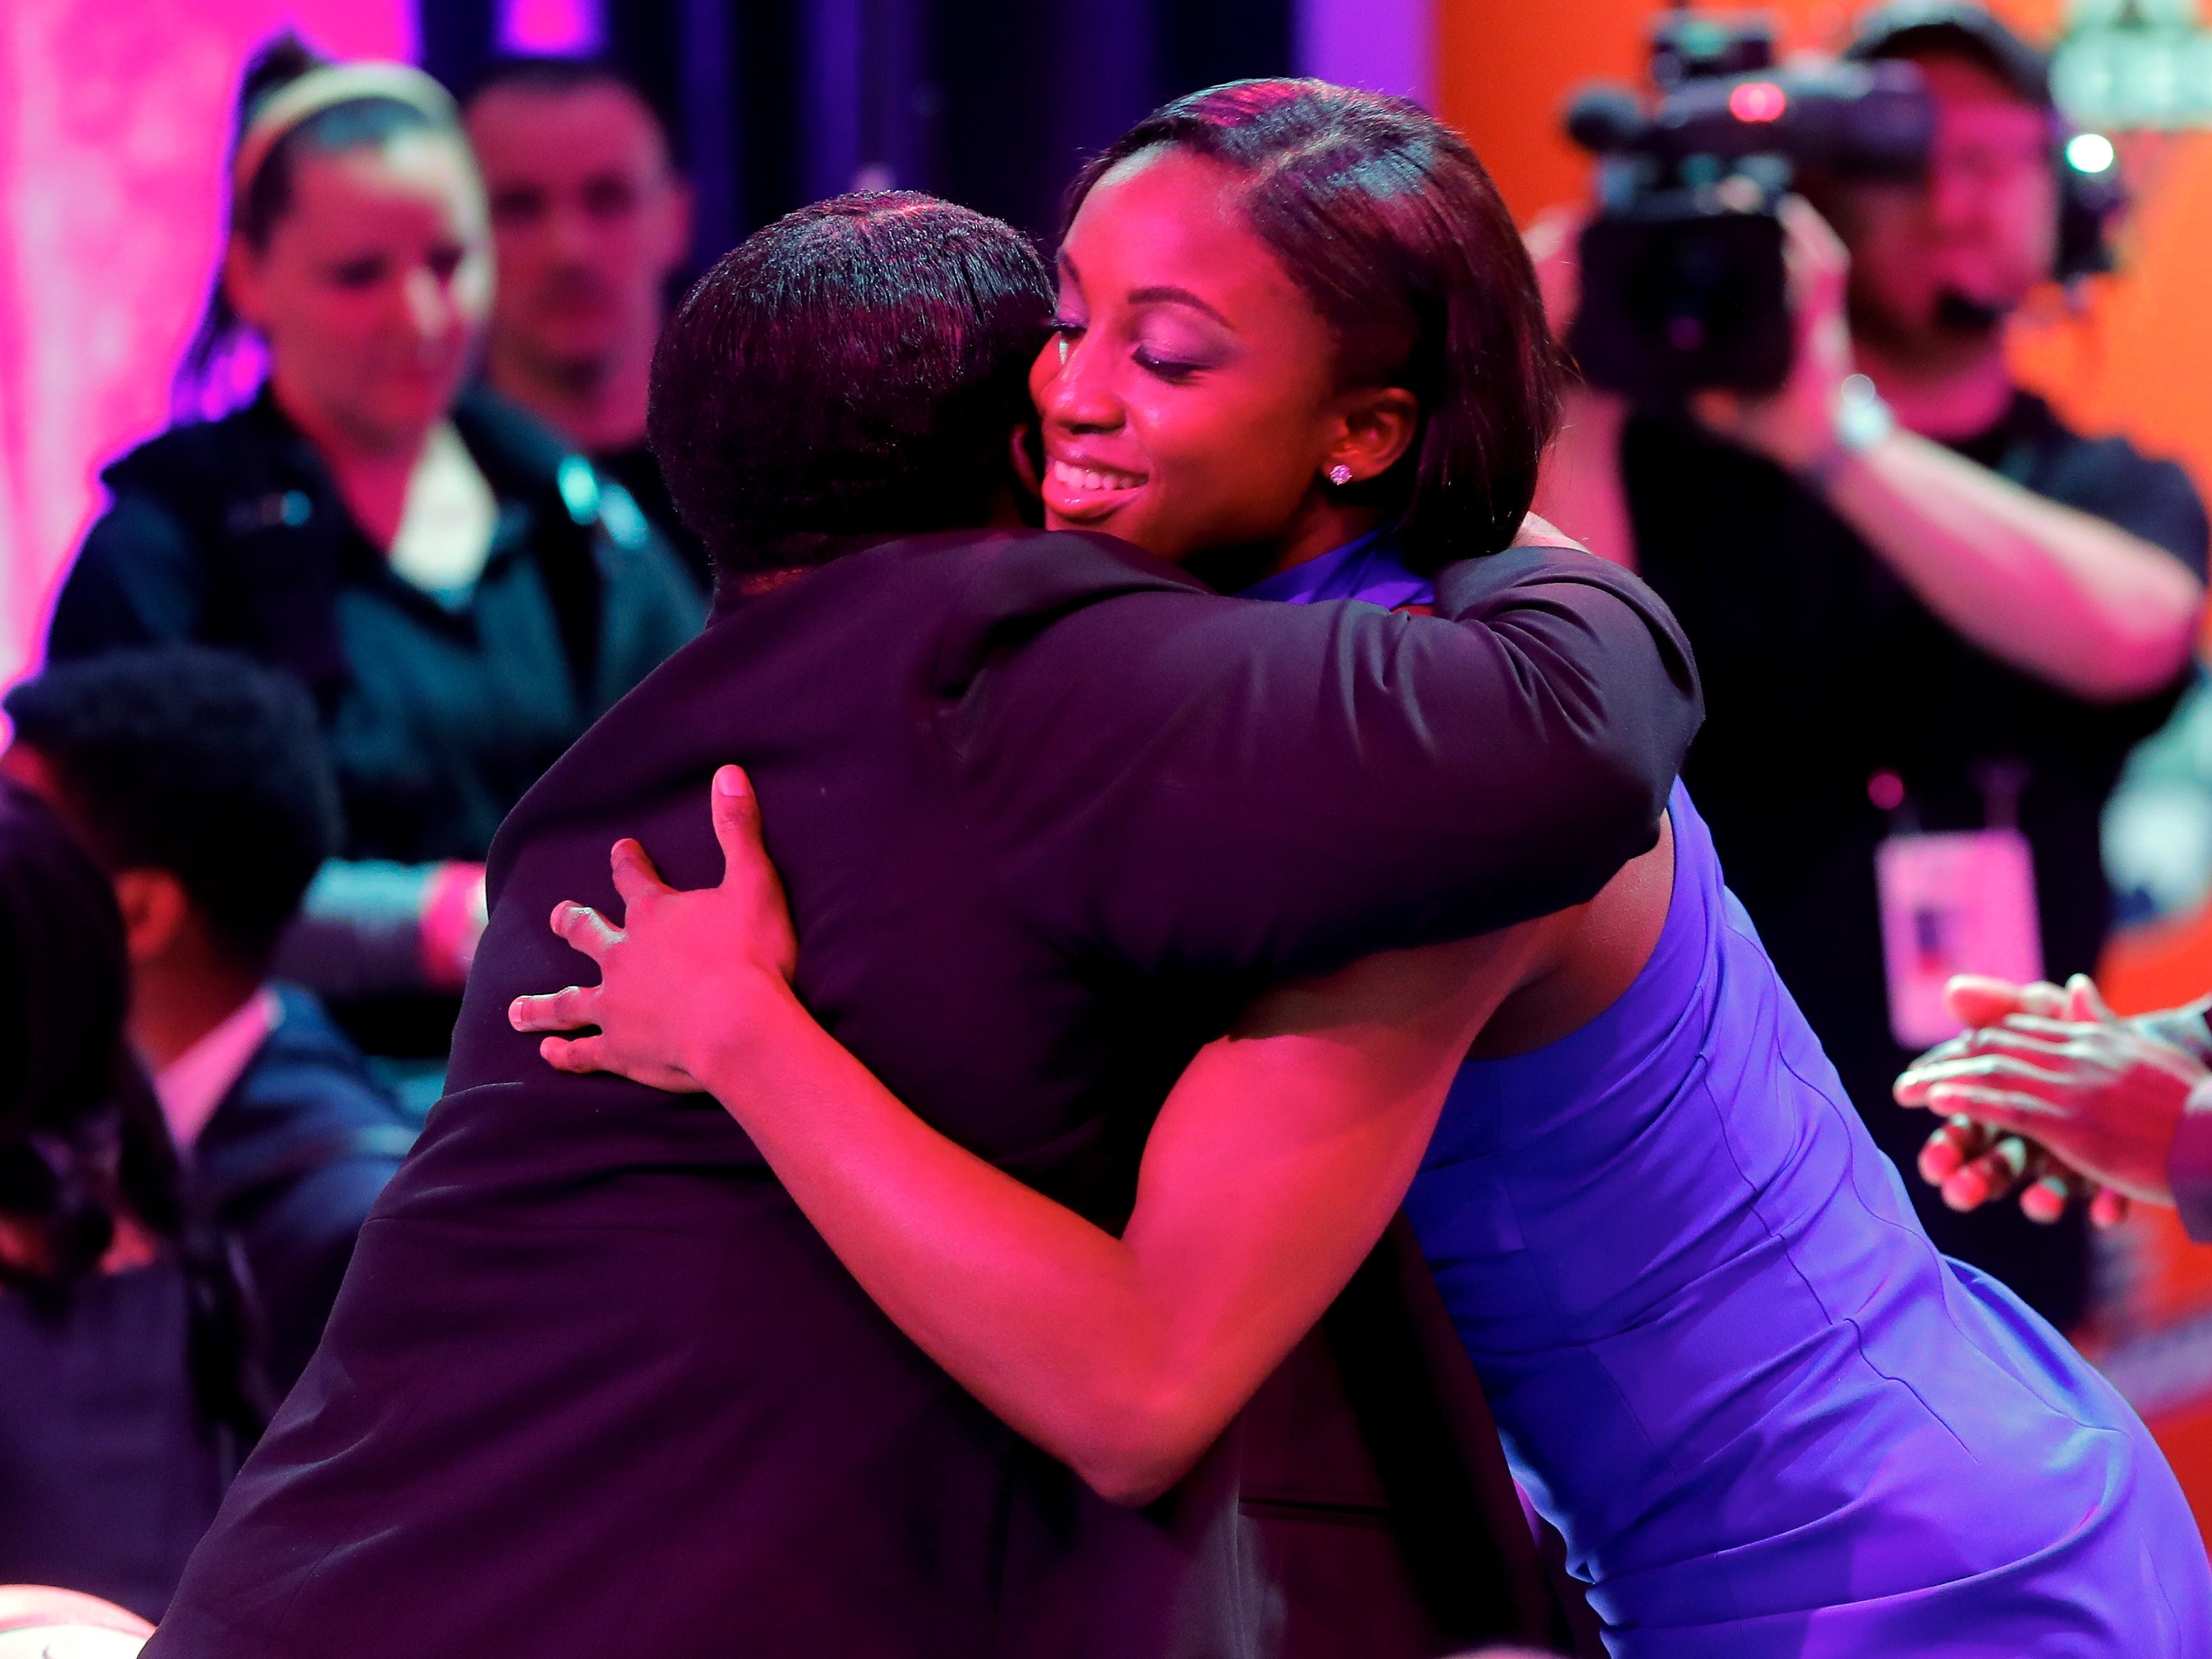 Notre Dame's Jackie Young hugs a relative after being selected by the Las Vegas Aces as the No. 1 pick in the WNBA draft.